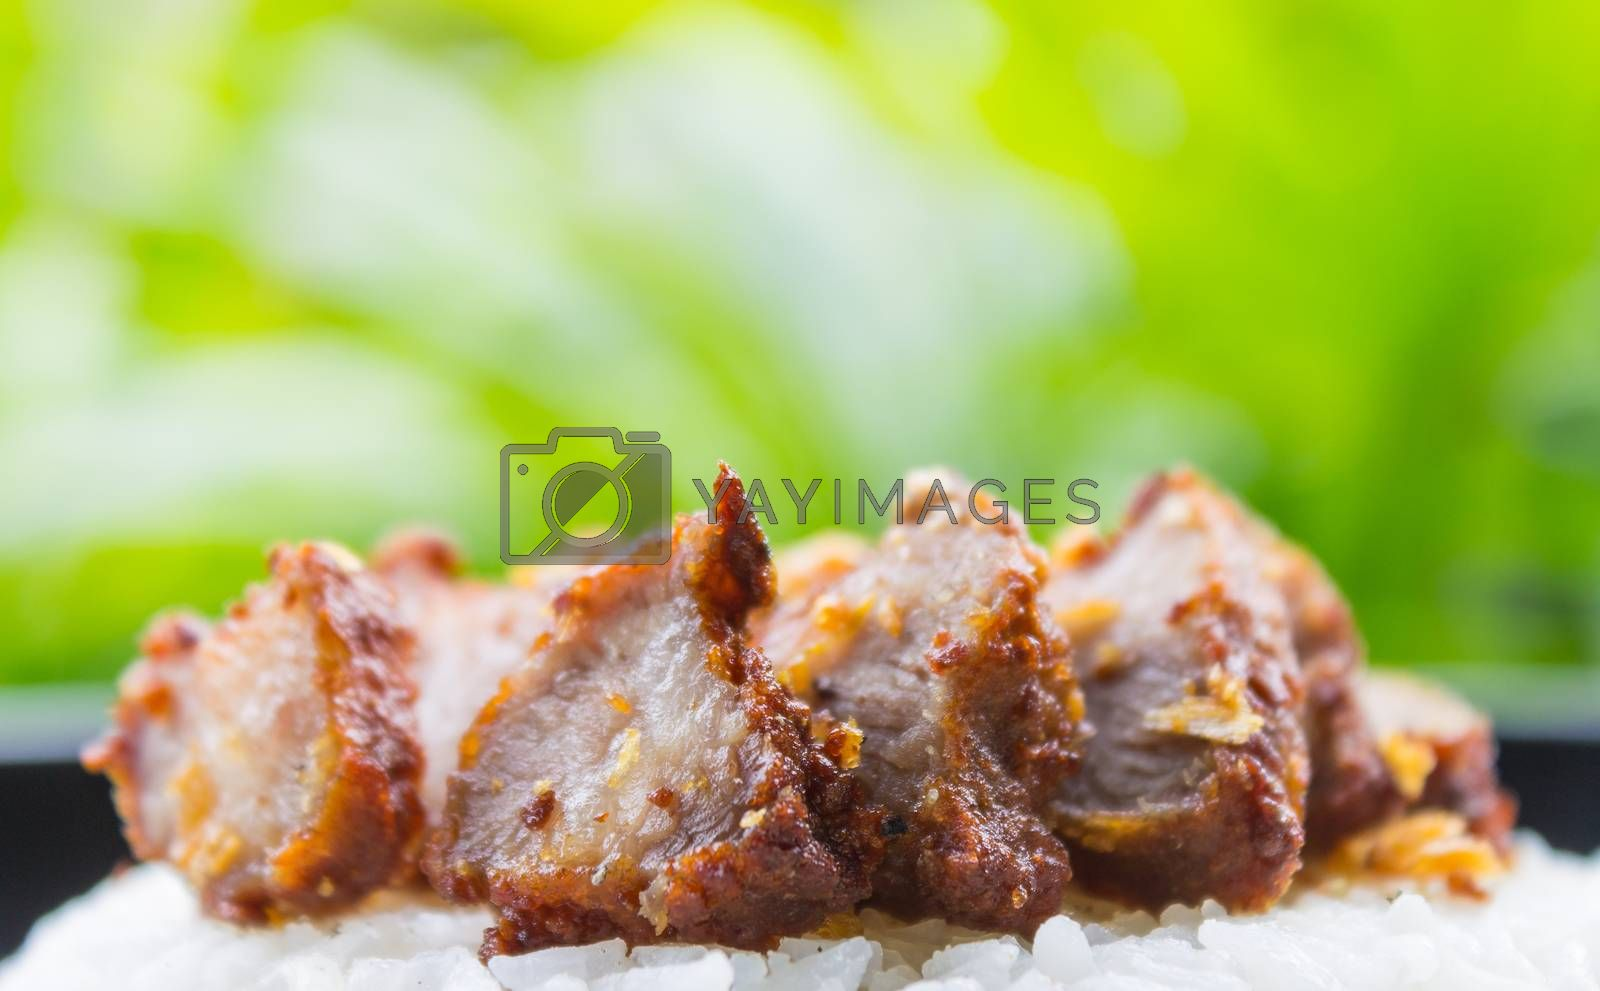 Thai Food Fried Pork with Garlic and Rice on Natural Green Tree Background Thai Food. Delicious Fried Pork with Garlic Thai food style for food and drink category